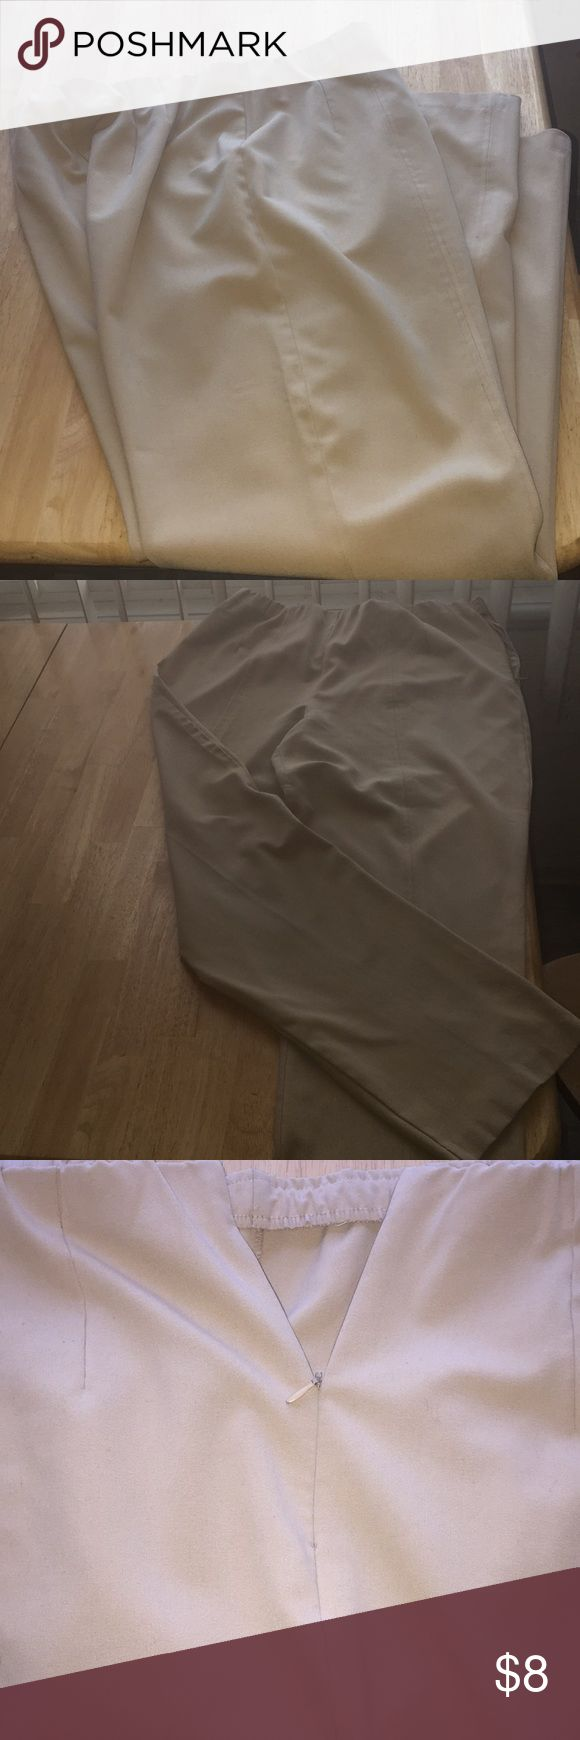 Ladies Dress Slacks by Sag Harbor Nicely fit dress slacks by Sag Harbor.  Pleated in front and back with a side zipper.  Elastic waistband.  Soft and comfortable.  Slightly discolored.  Size 14.  62% Polyester, 32% Rayon, 6% Spandex. Sag Harbor Pants Trousers